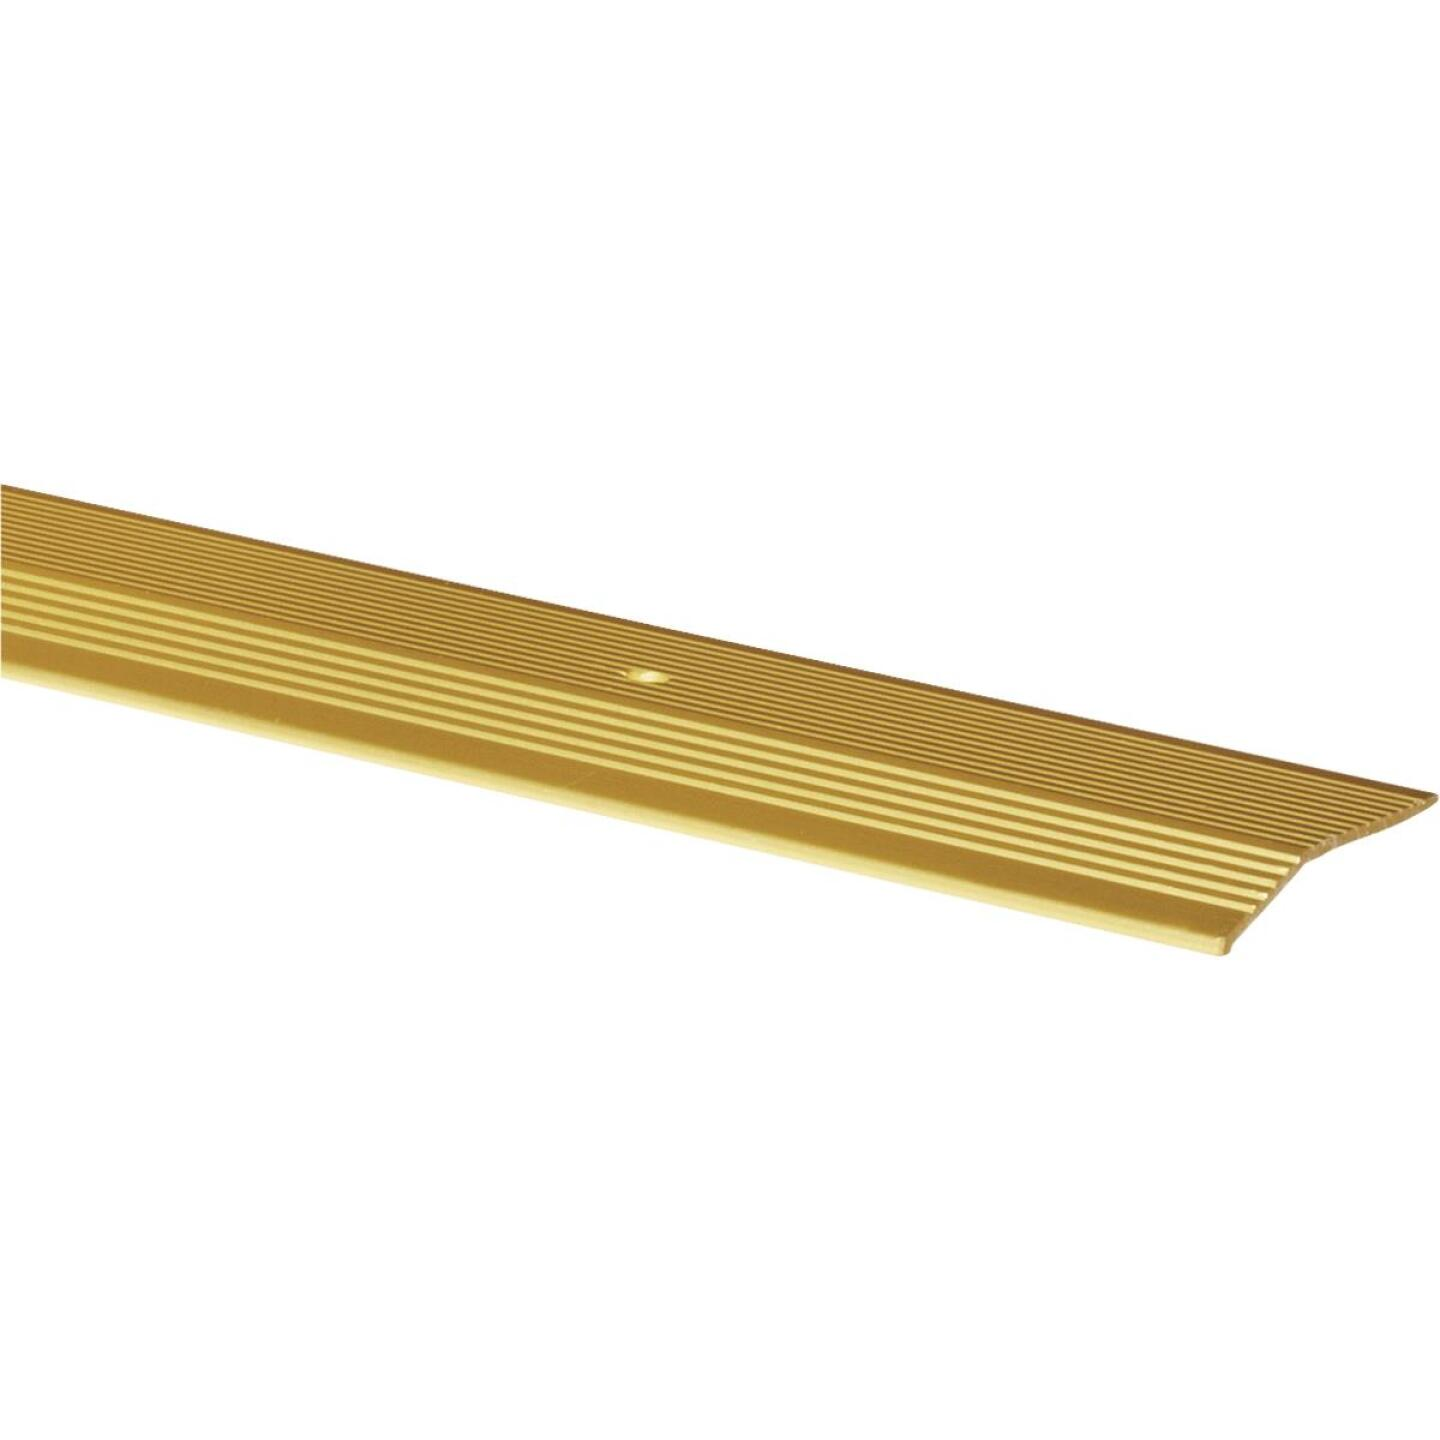 M-D Satin Brass Fluted 2 In. x 6 Ft. Aluminum Carpet Trim Bar, Extra Wide Image 1